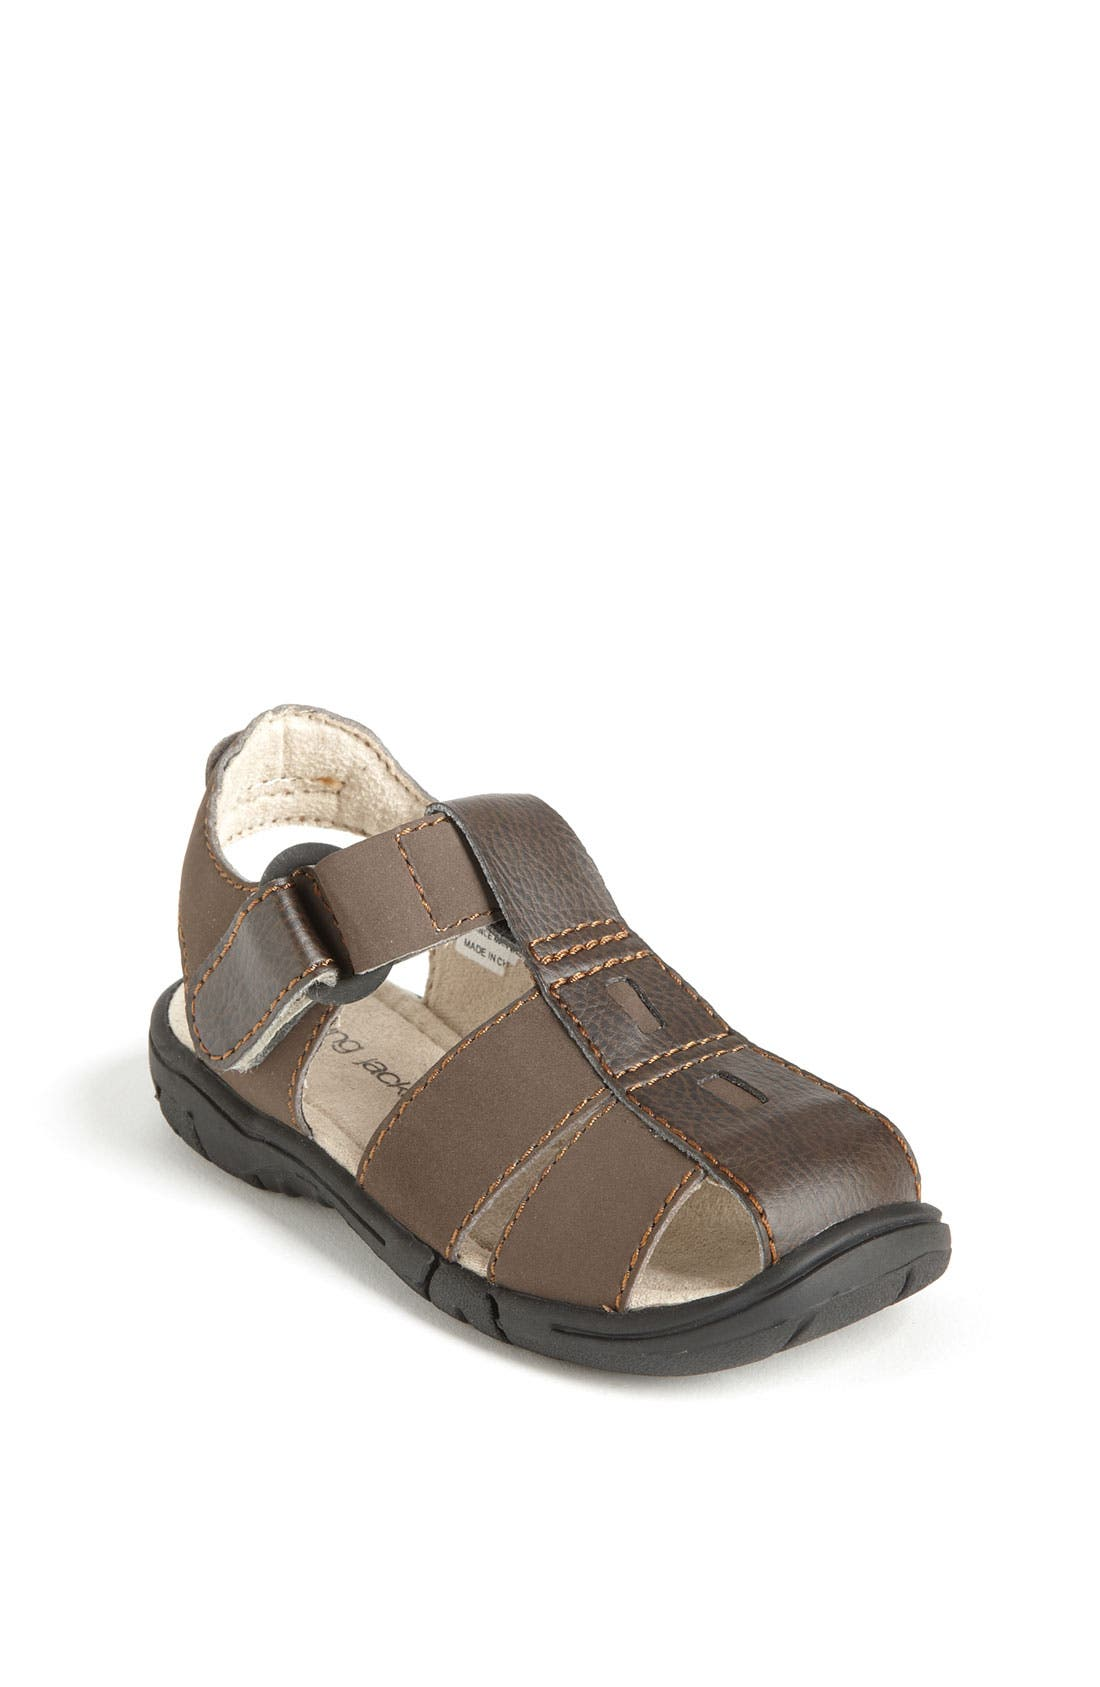 Main Image - Jumping Jacks 'Sand Lot' Sandal (Walker & Toddler)